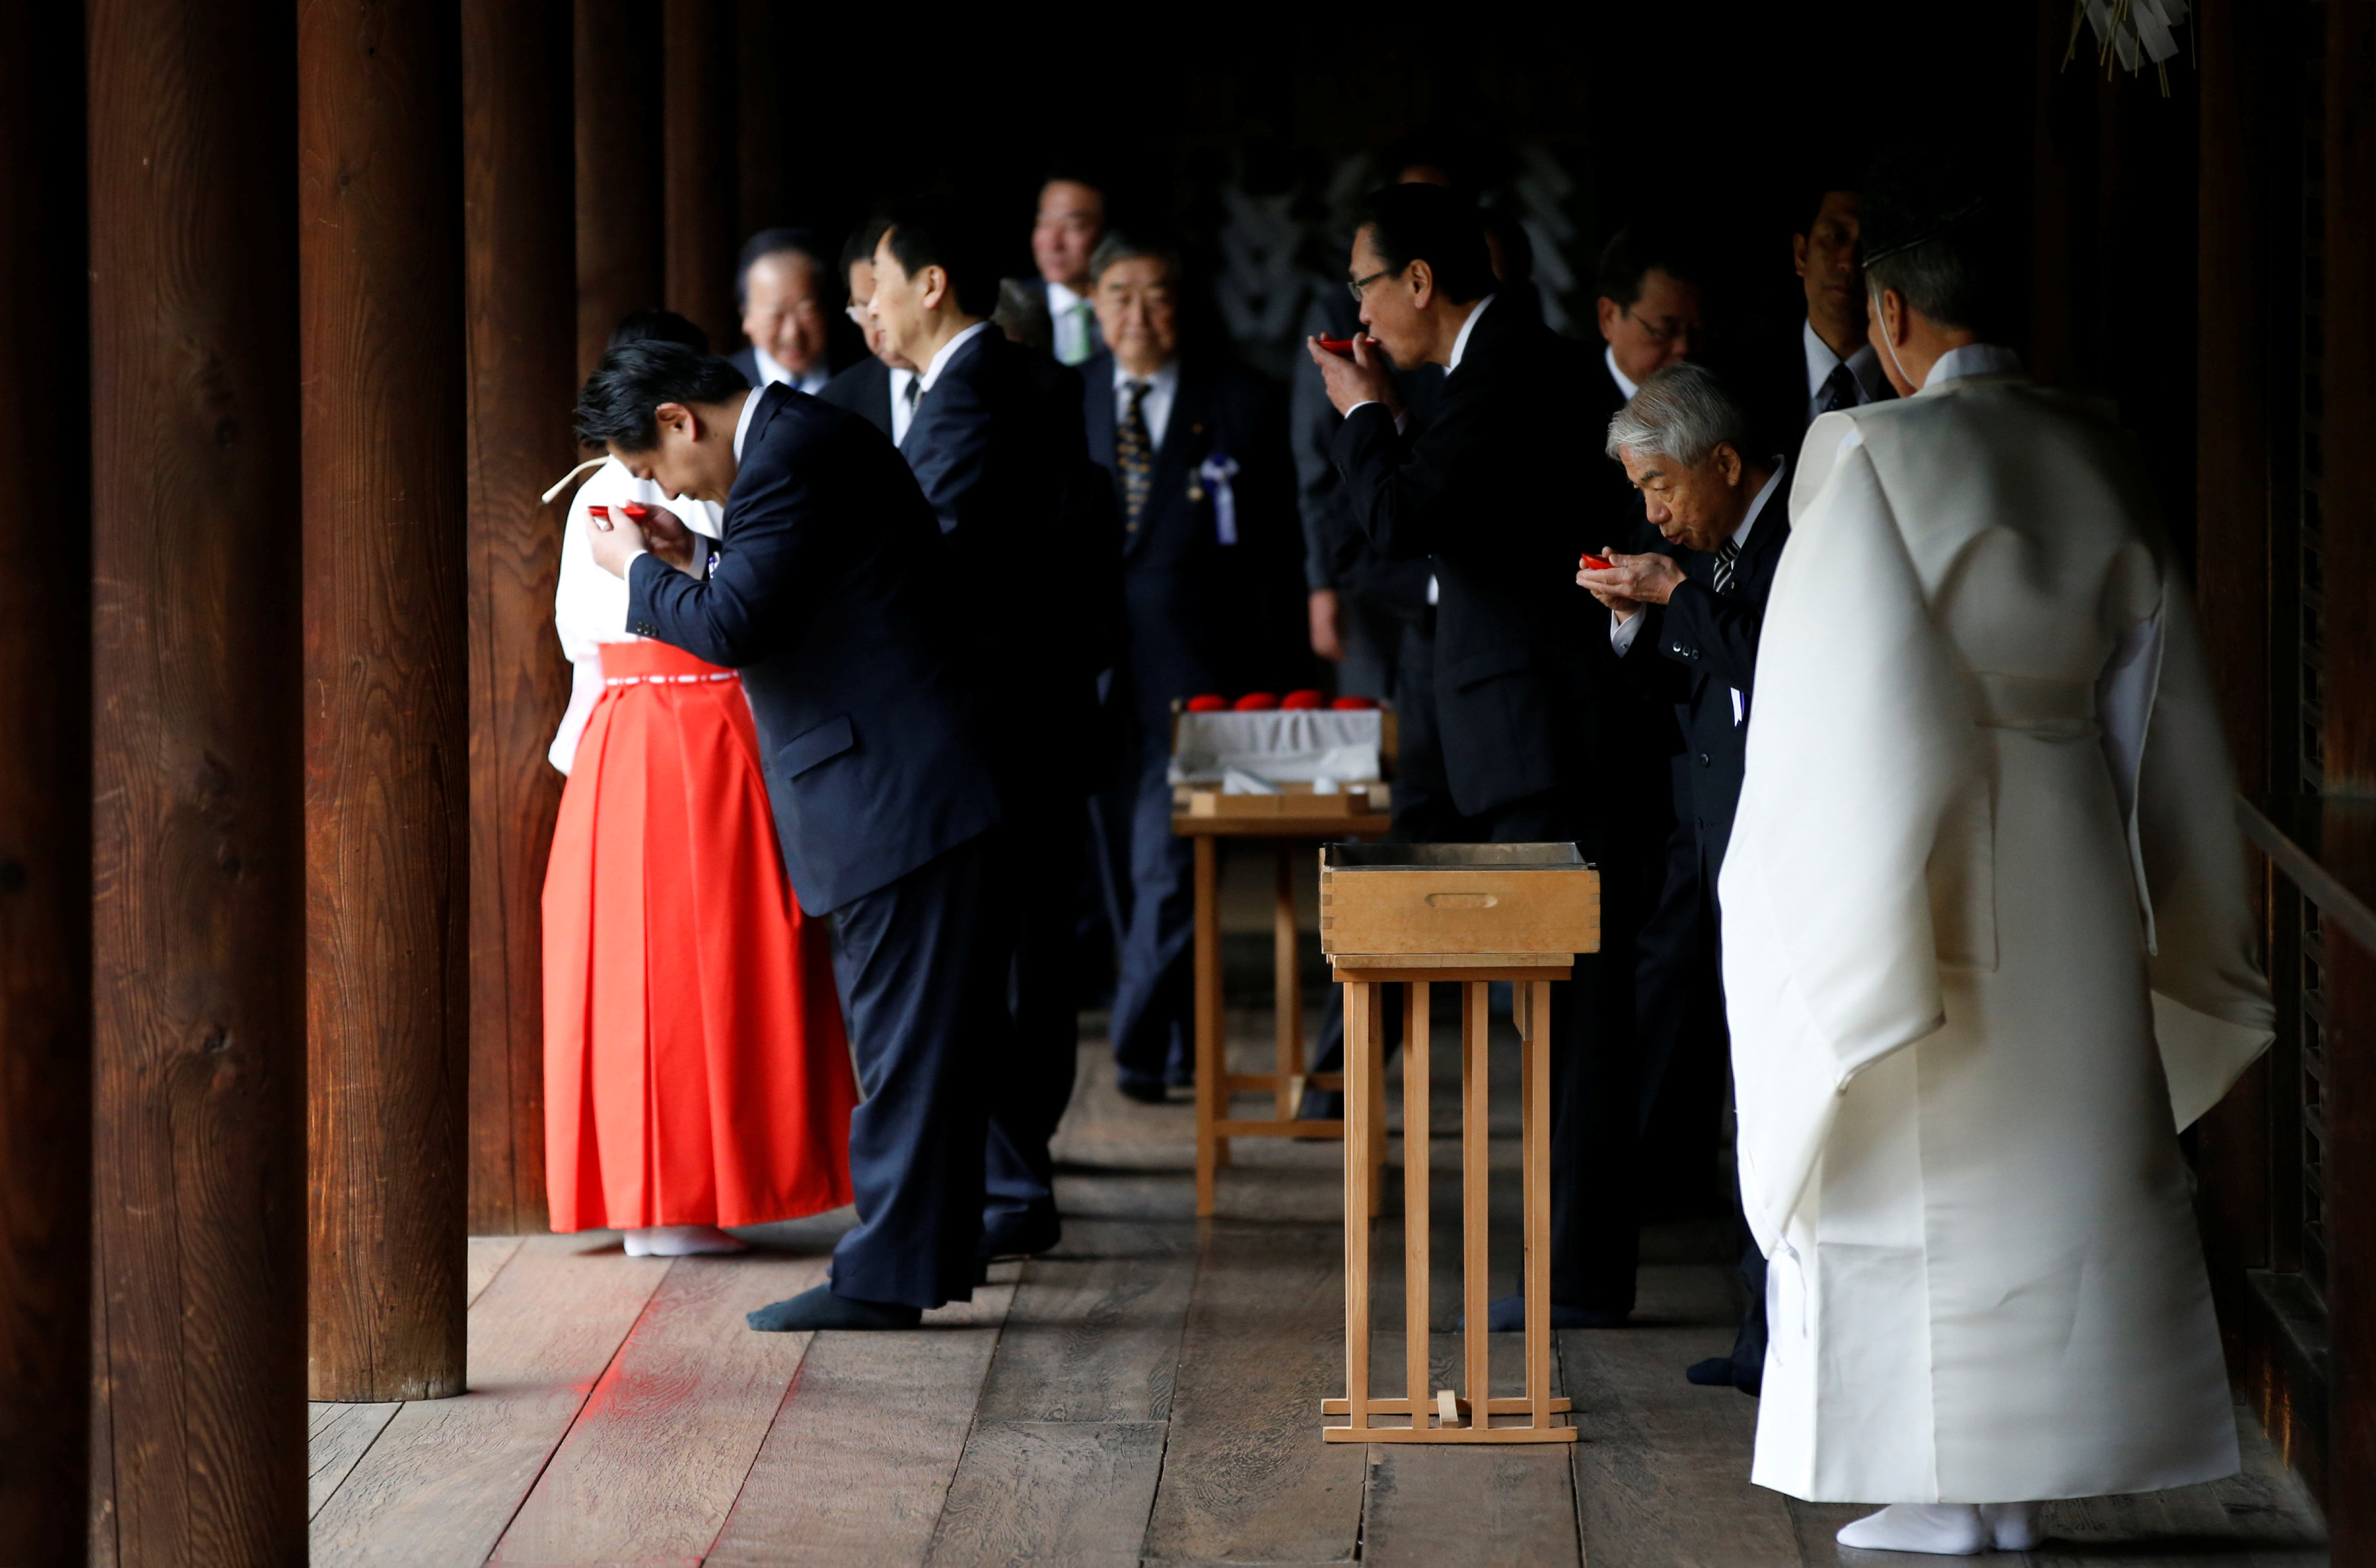 A group of lawmakers including Japan's ruling Liberal Democratic Party (LDP) lawmaker Hidehisa Otsuji (2nd R) sip sake as a ritual after offering prayers at the Yasukuni Shrine in Tokyo, Japan April 21, 2017. Credit: Reuters/Toru Hanai